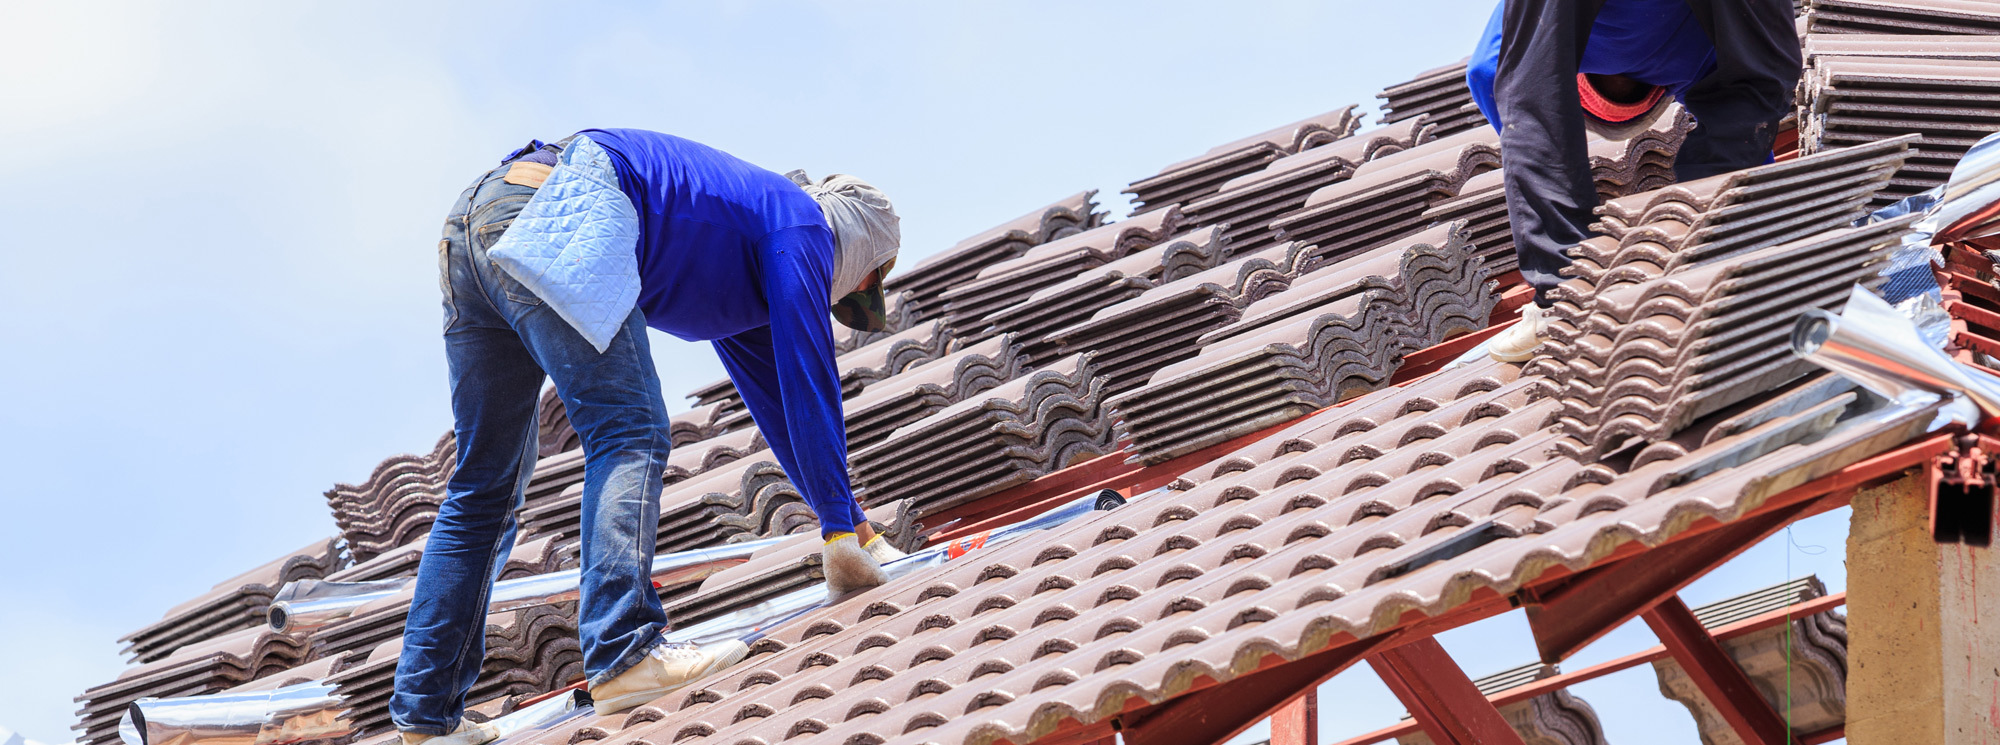 Roofing installation and repair services in Okeana, OH